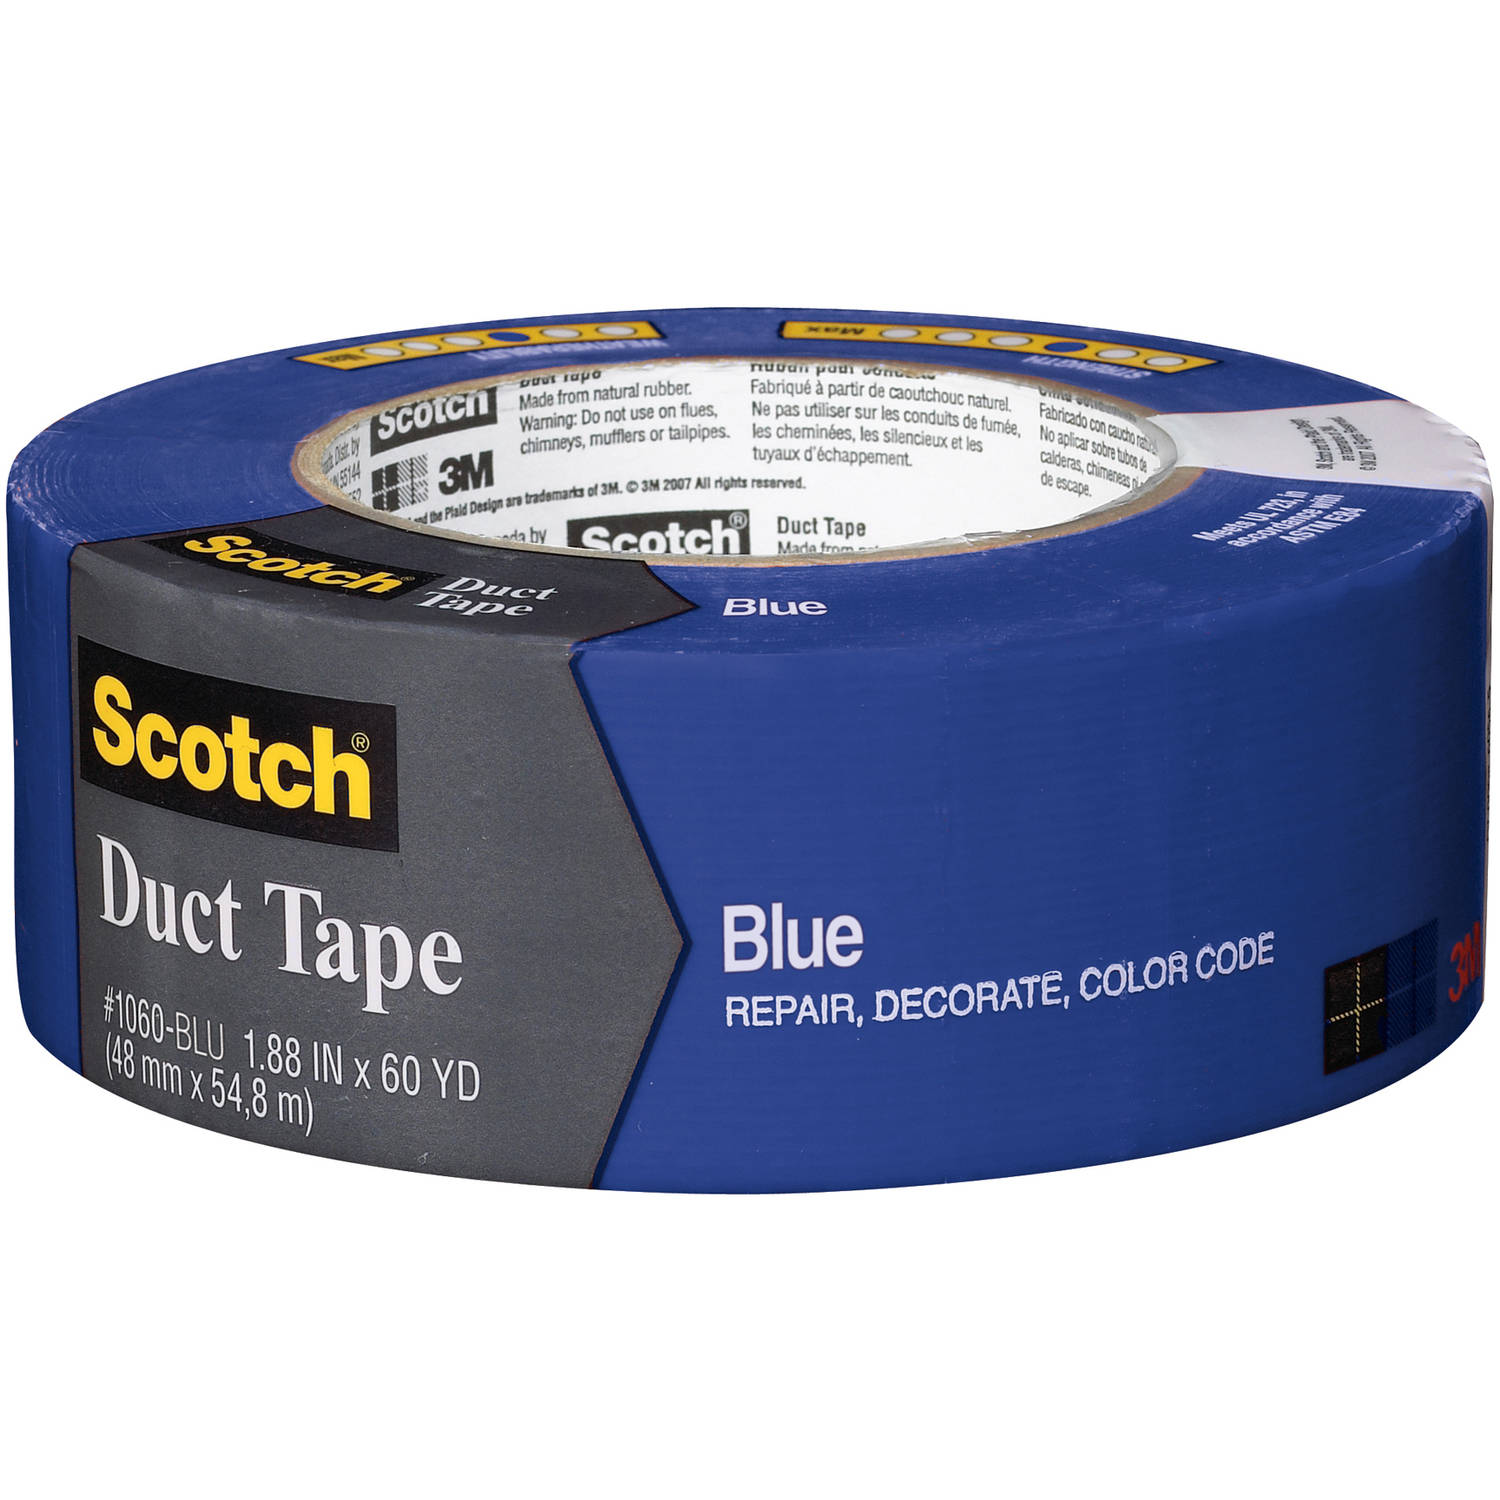 "3M 1060-BLU-A 1.88"" x 60 Yards Blue Scotch Duct Tape"